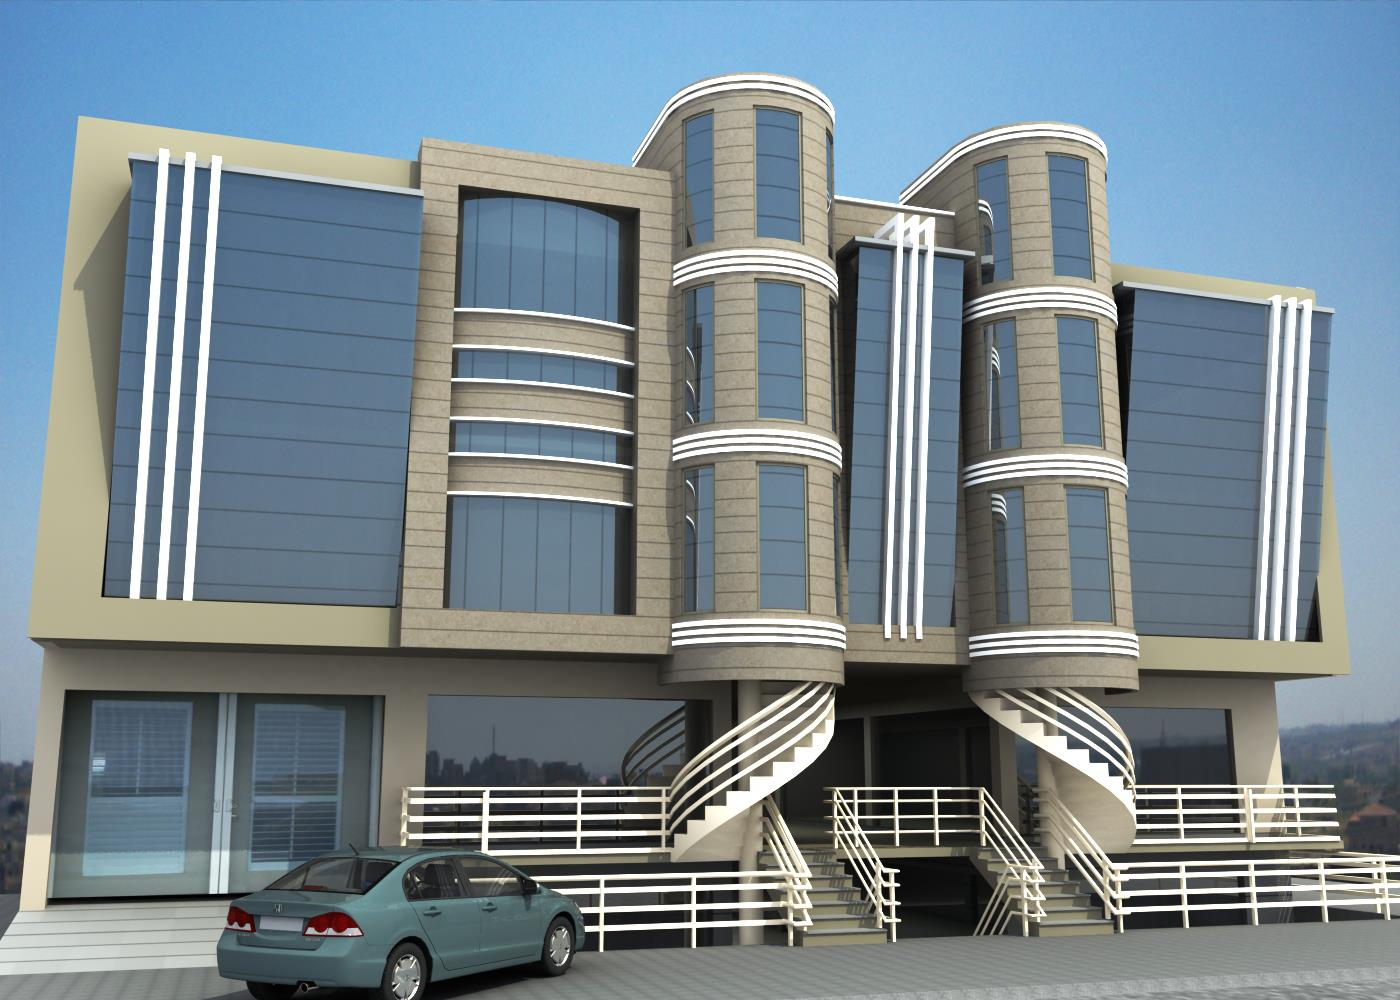 Commercial buildng design 3d architecture visualizations for Design a building